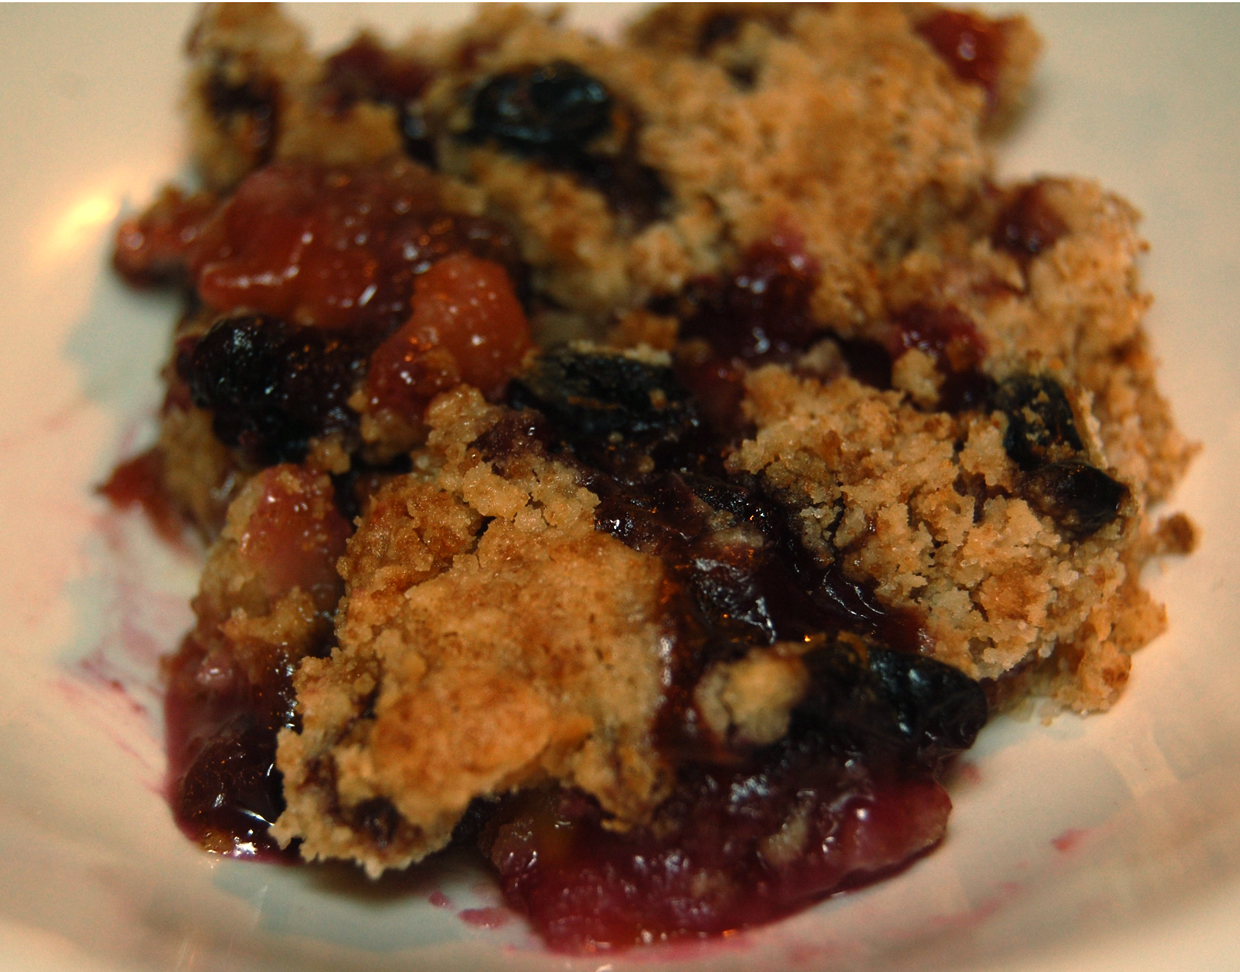 TGIF: blueberry-peach cobbler | Basis™ Good Food Recipes